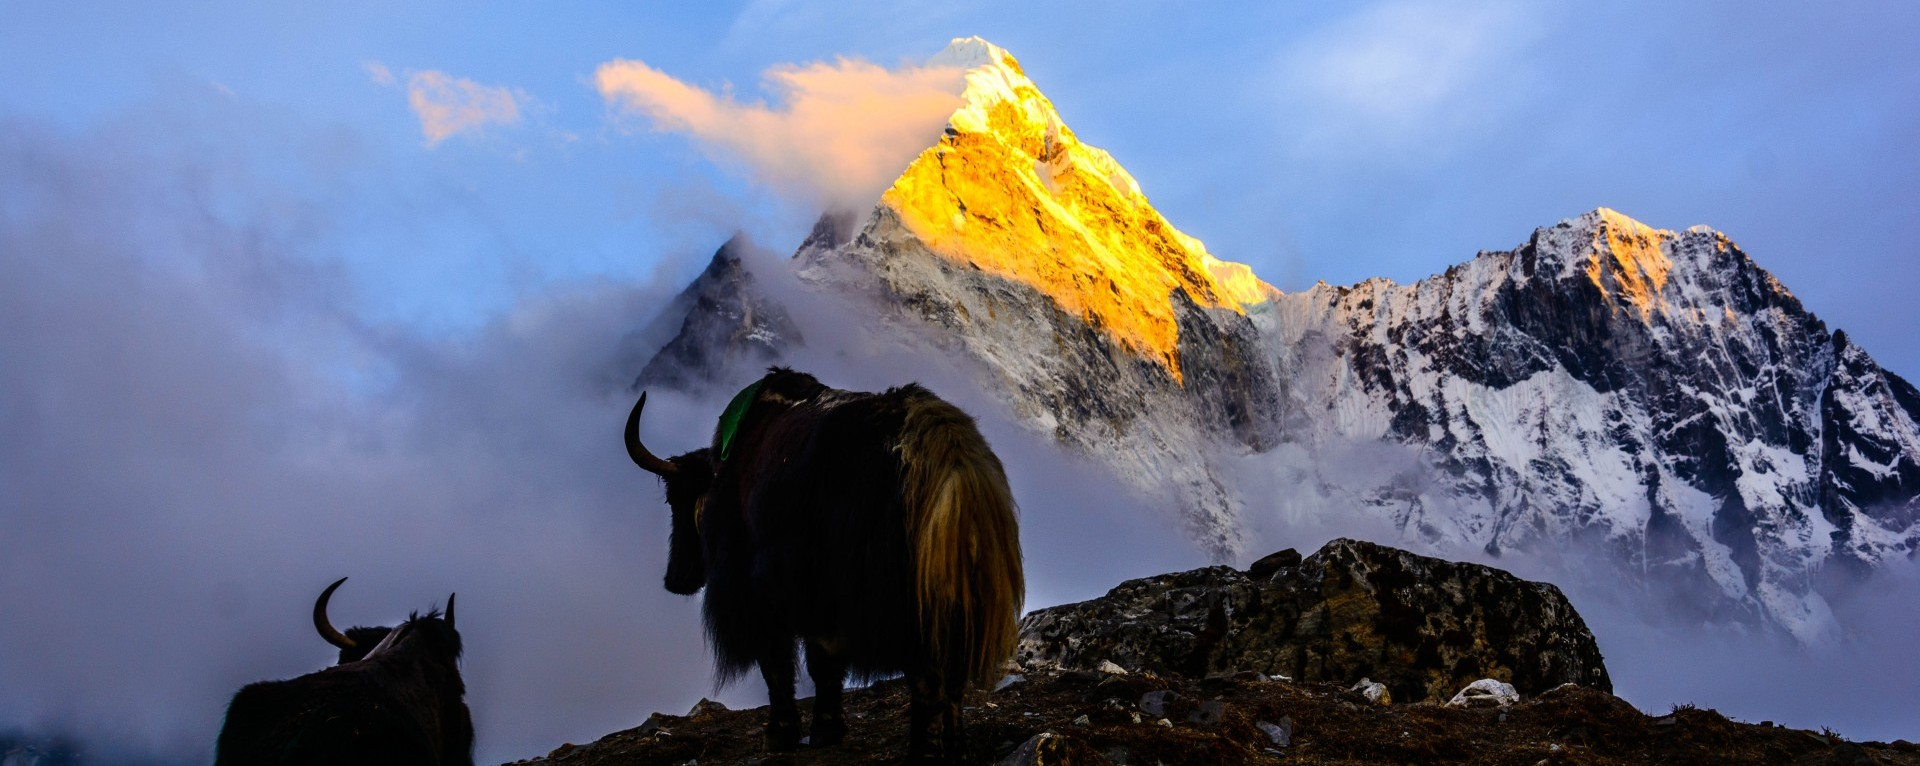 Yak at Everest